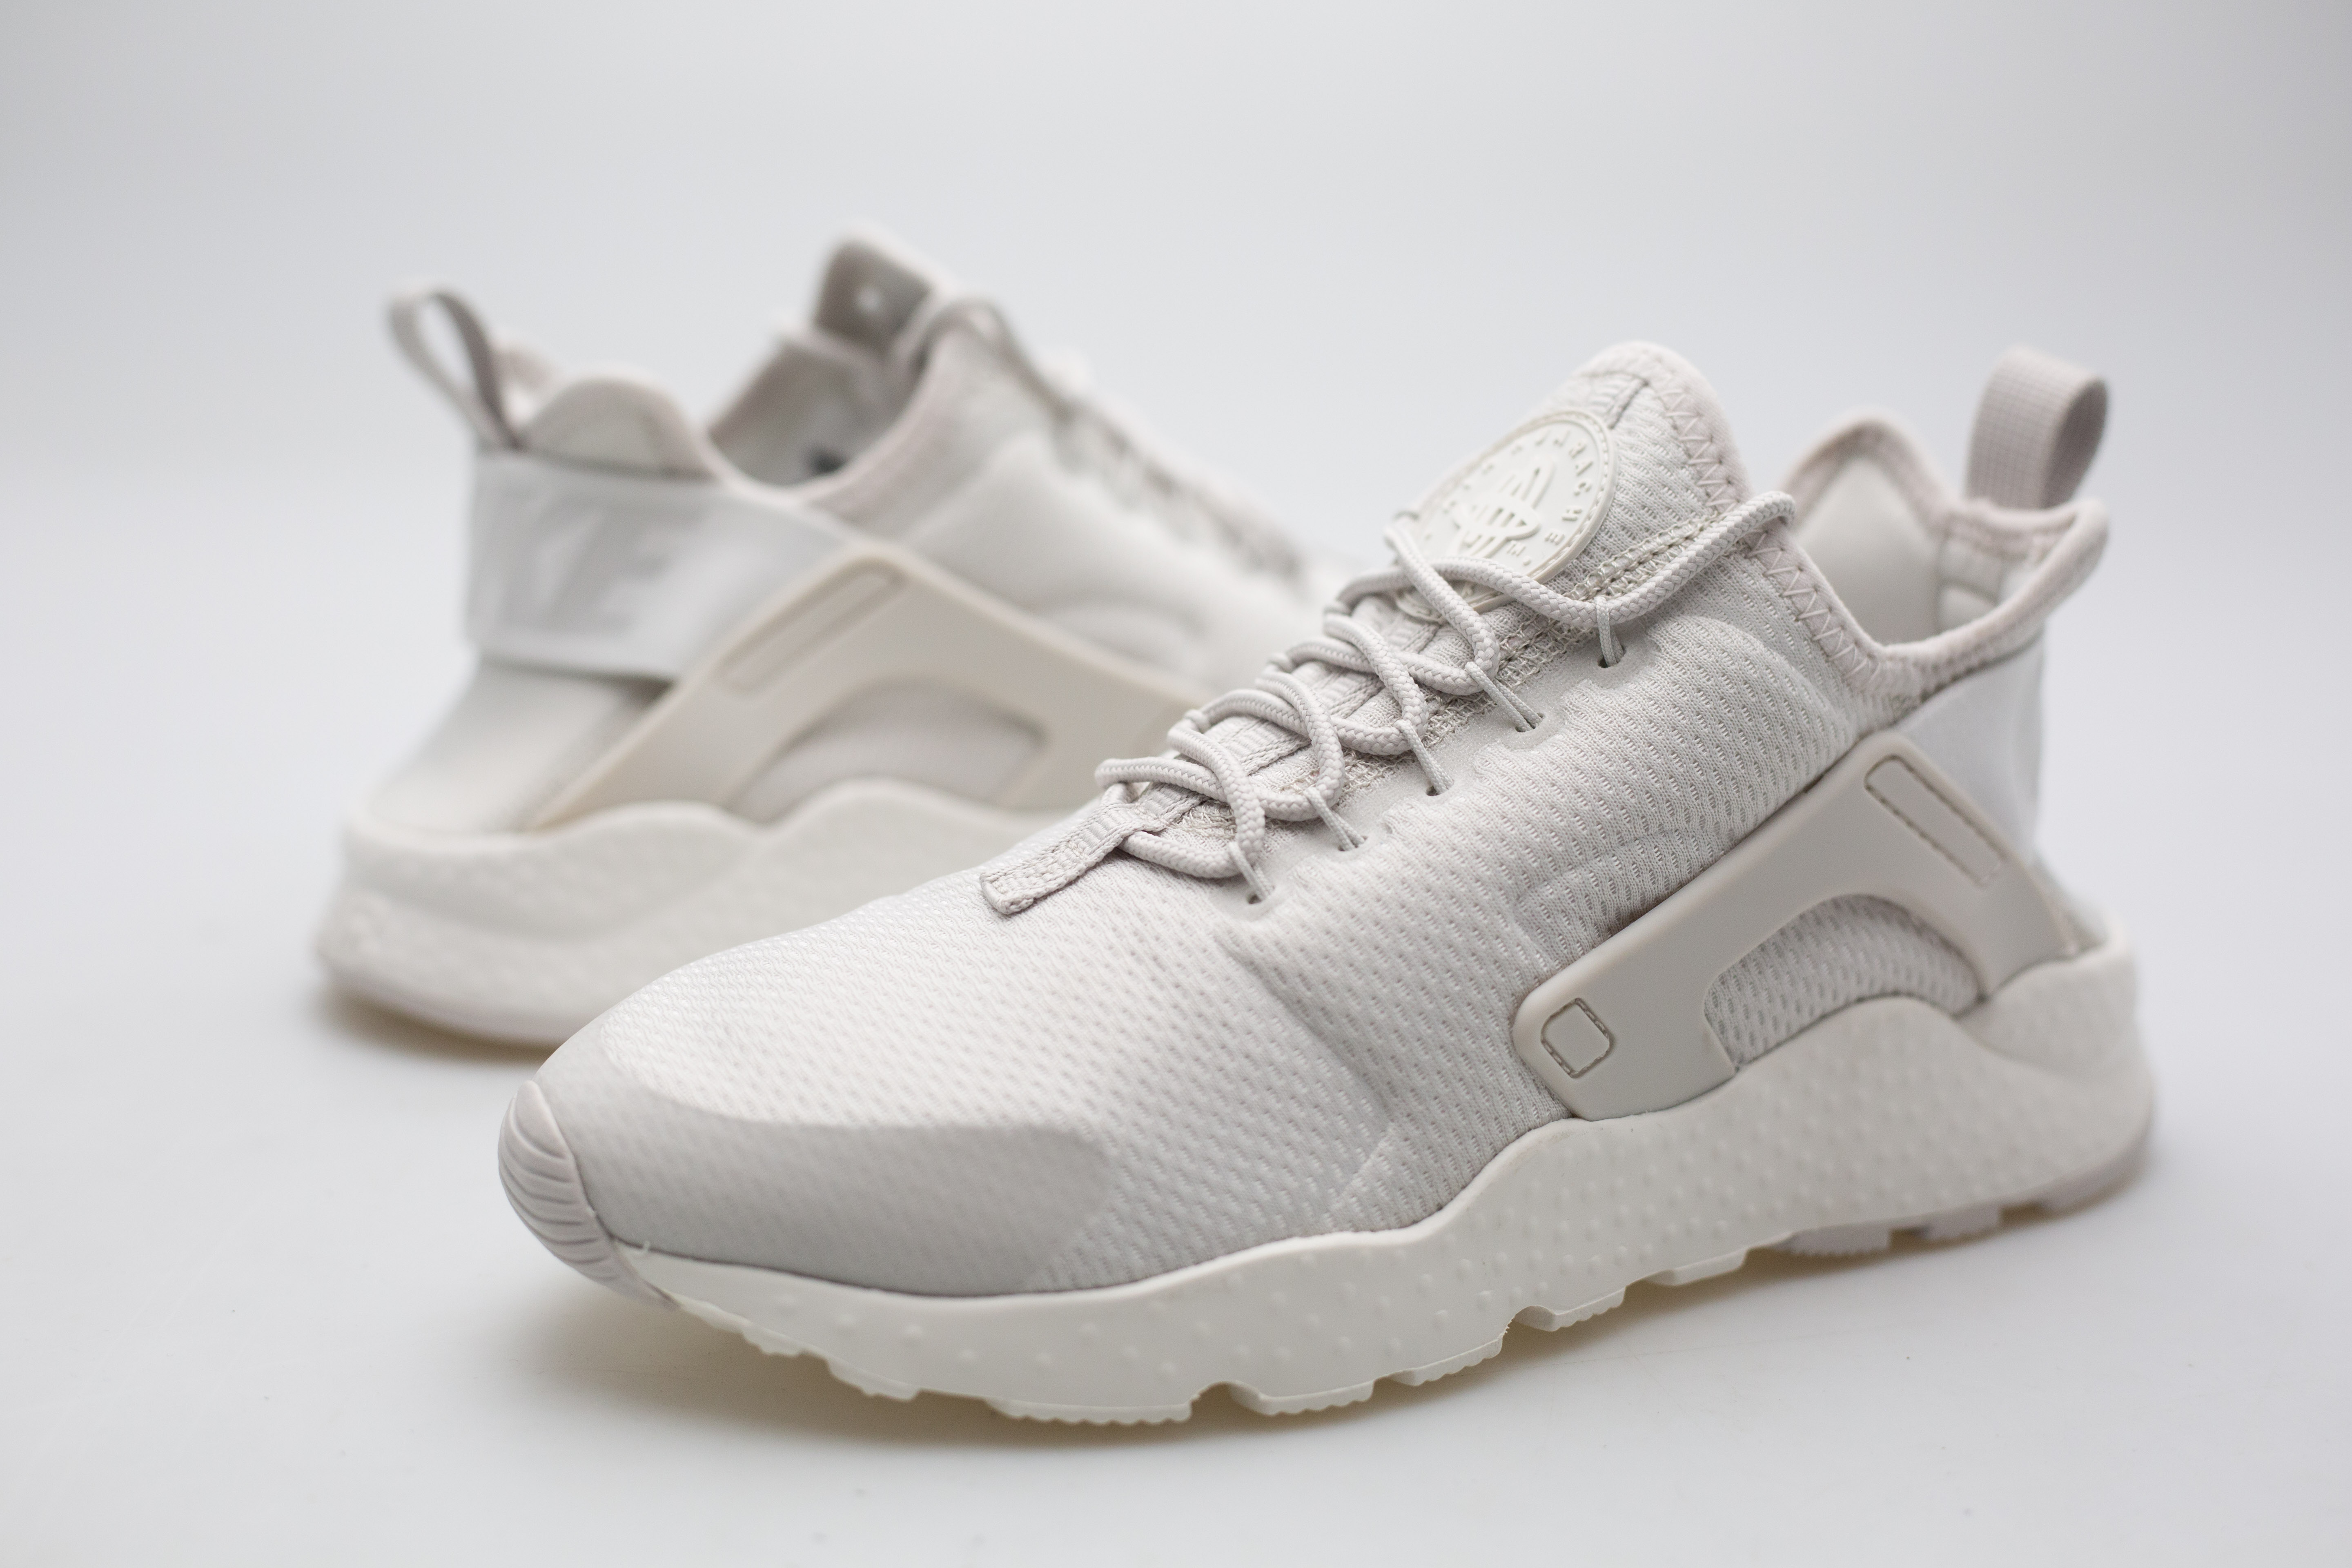 c985c71c660e2 ... 819151-004 Nike Women Air Huarache Run Ultra Light Bone Sail Sail Sail  b4beaf